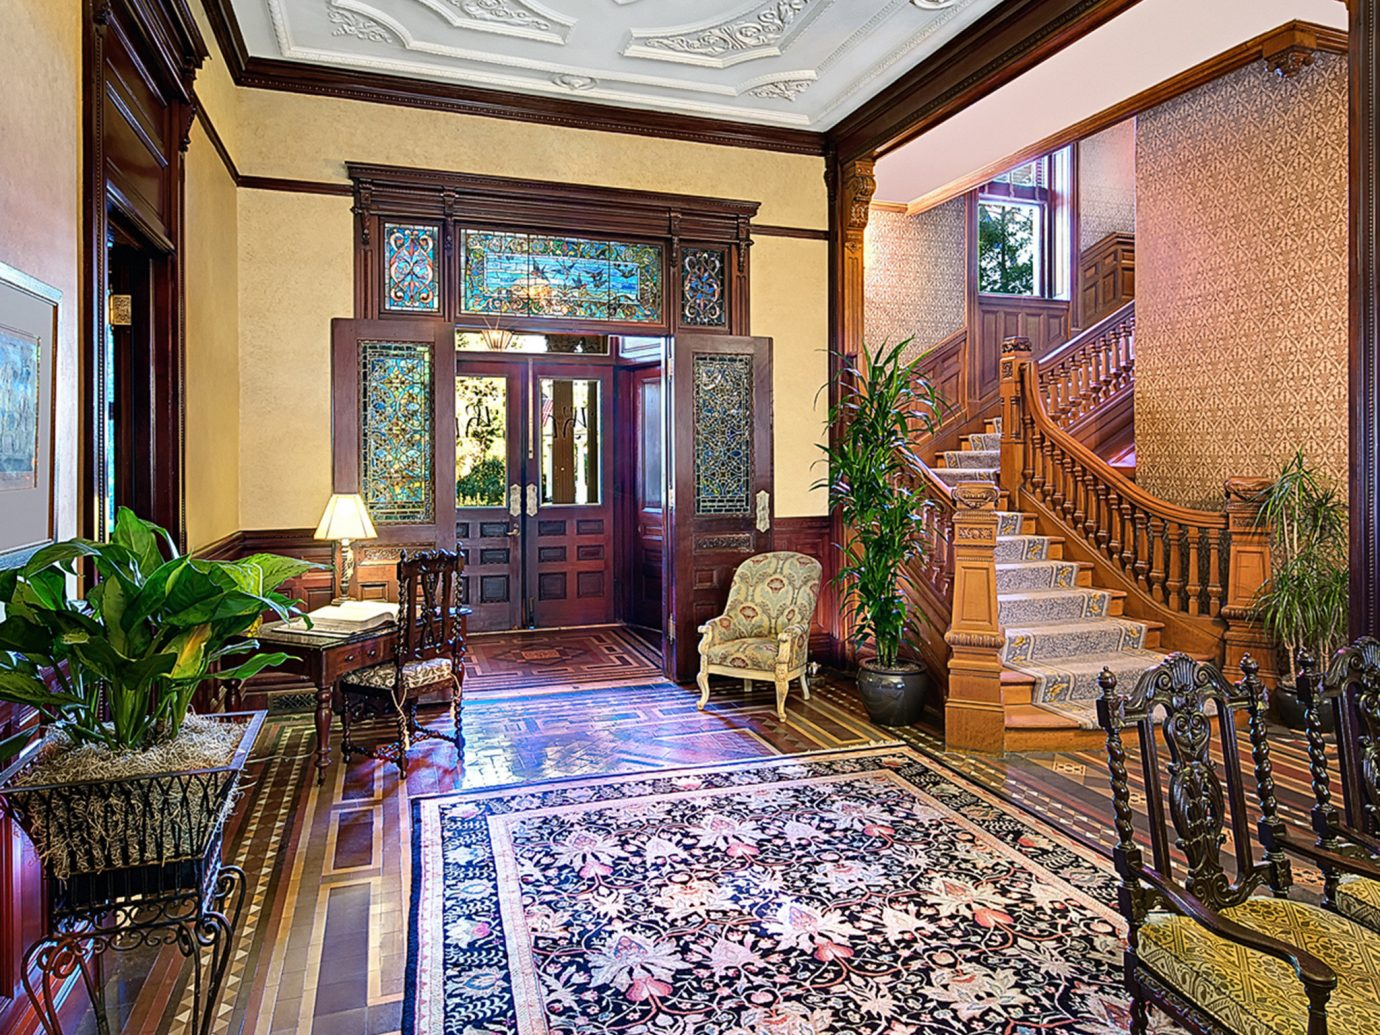 Historic Hotels Living Lounge Rustic Lobby property estate room mansion home interior design real estate palace Resort decorated area furniture